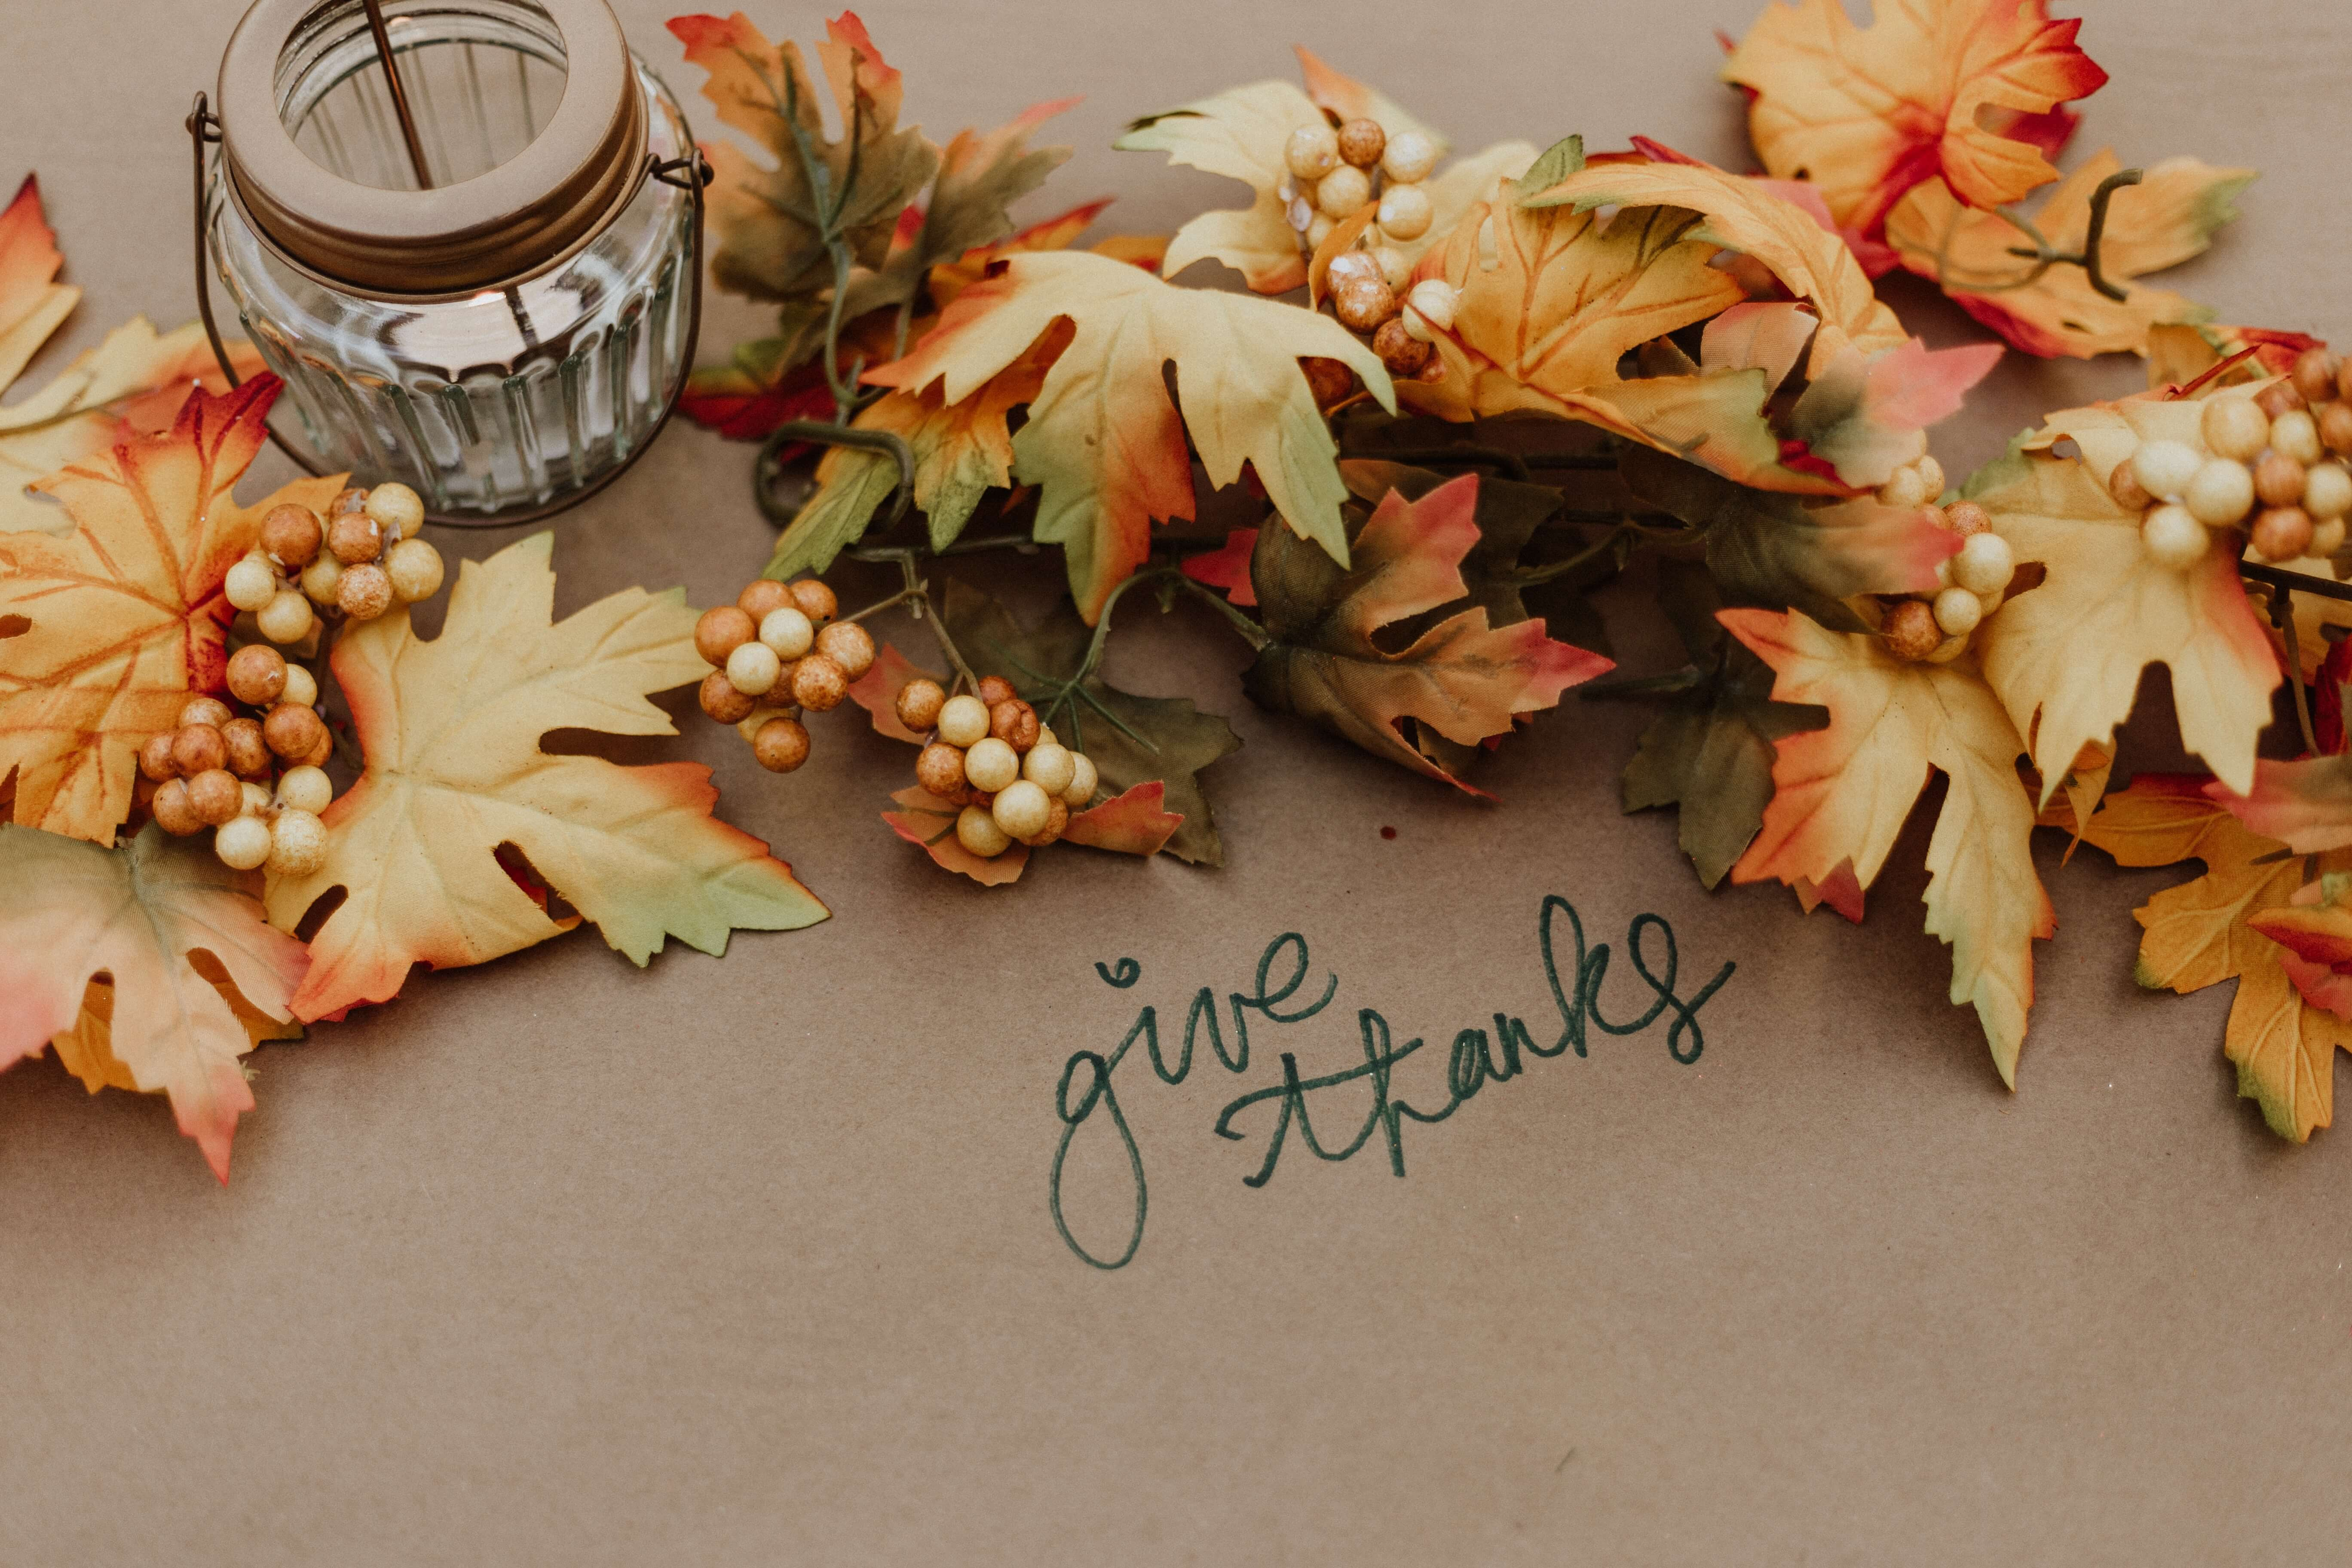 Happy Thanksgiving from the Jungo Team!